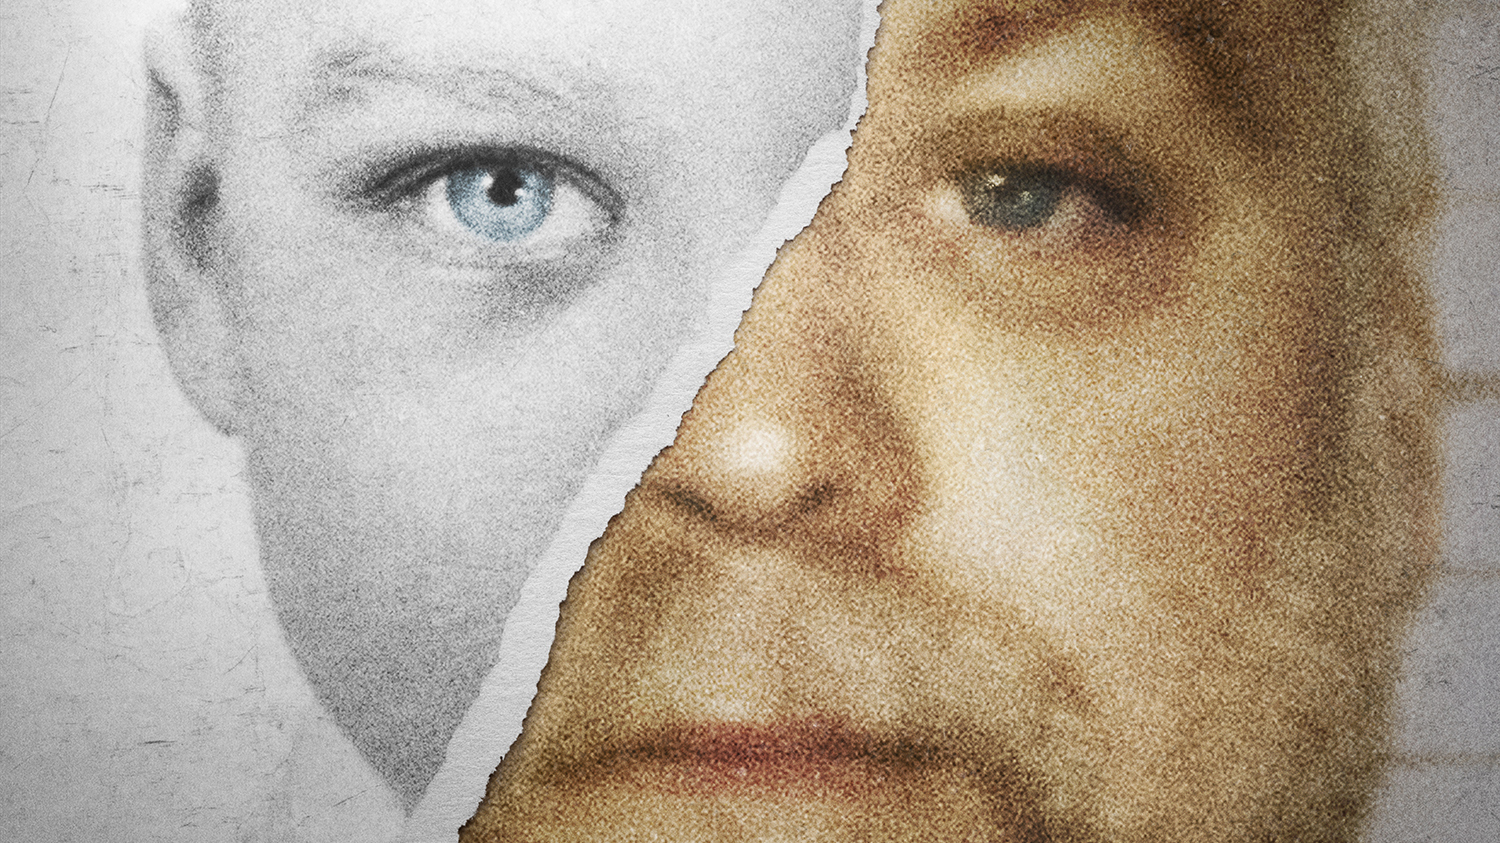 Brace yourselves: Making A Murderer Part 2 is coming